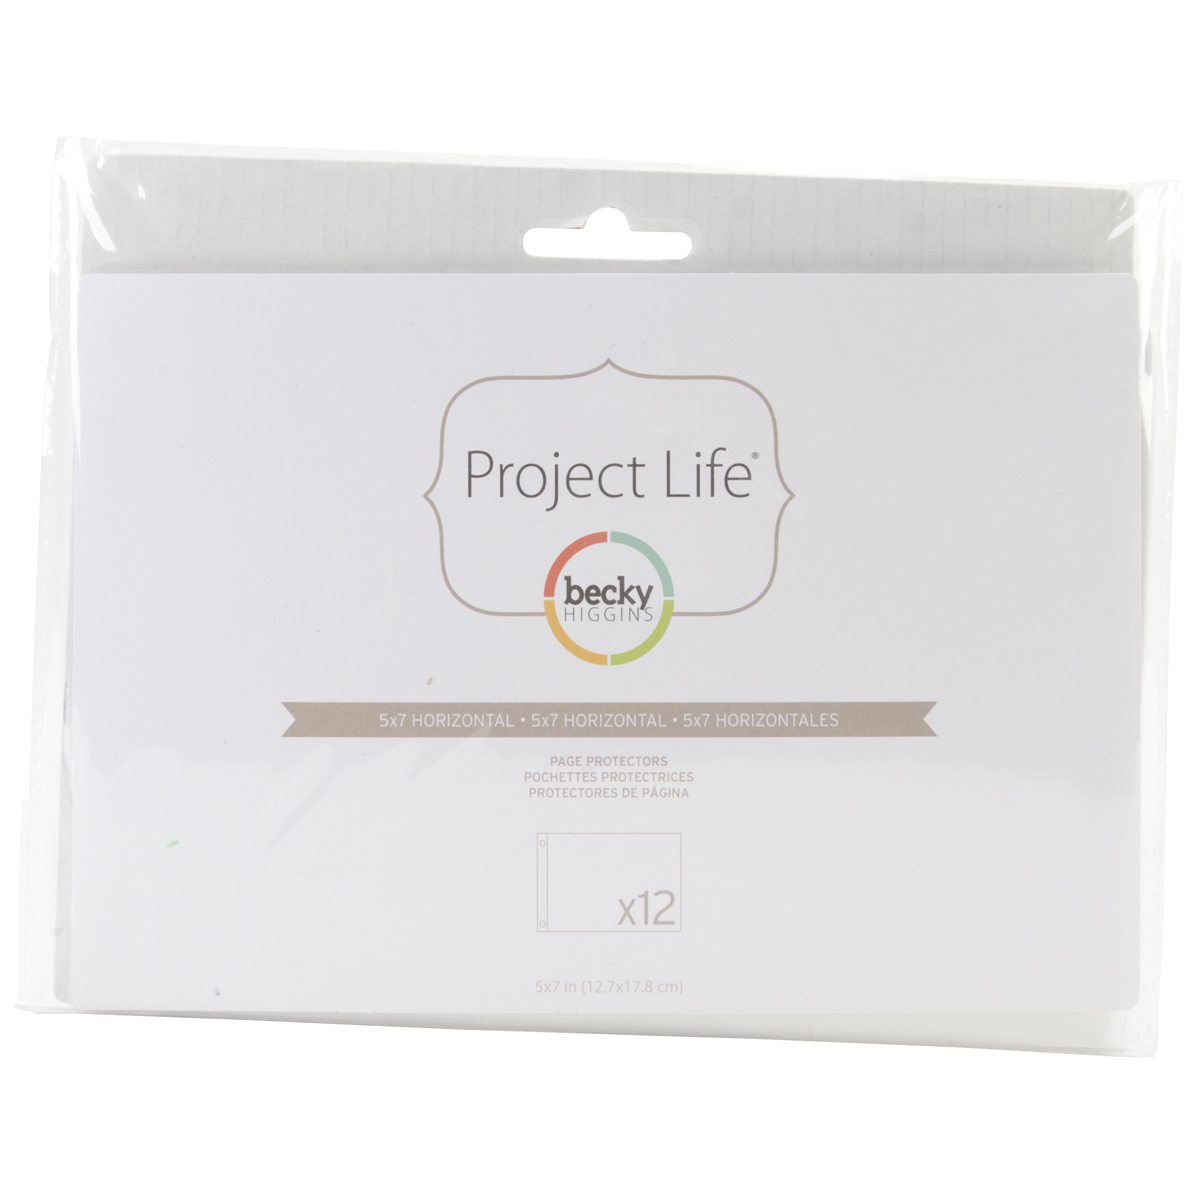 Project Life Photo Pages 5x7 380018